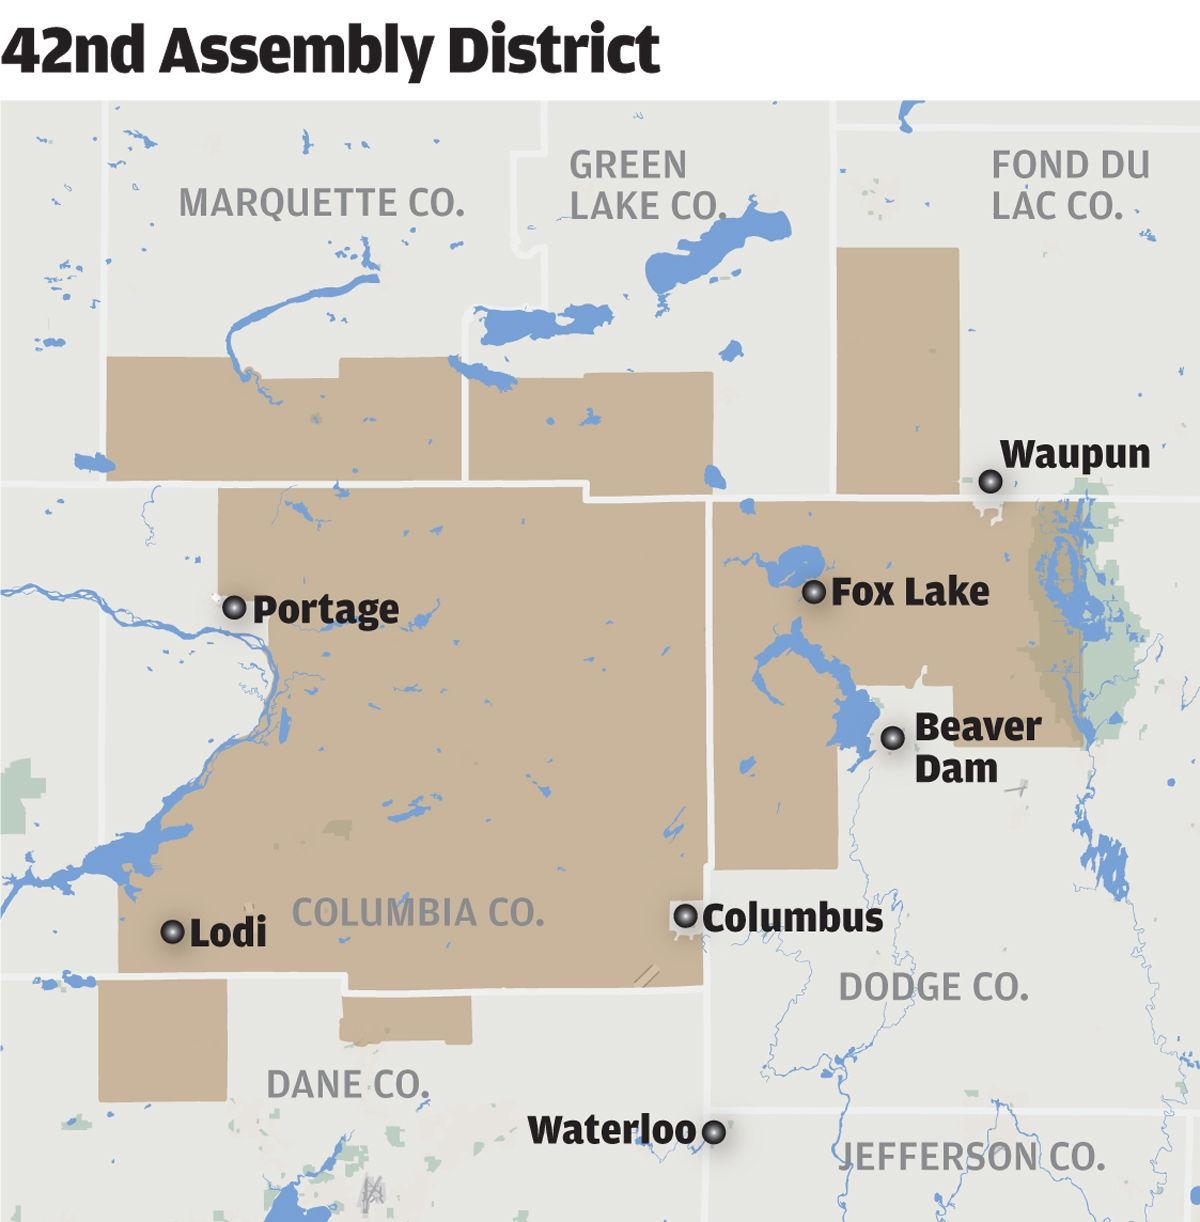 Wisconsin 42nd Assembly District June 2018